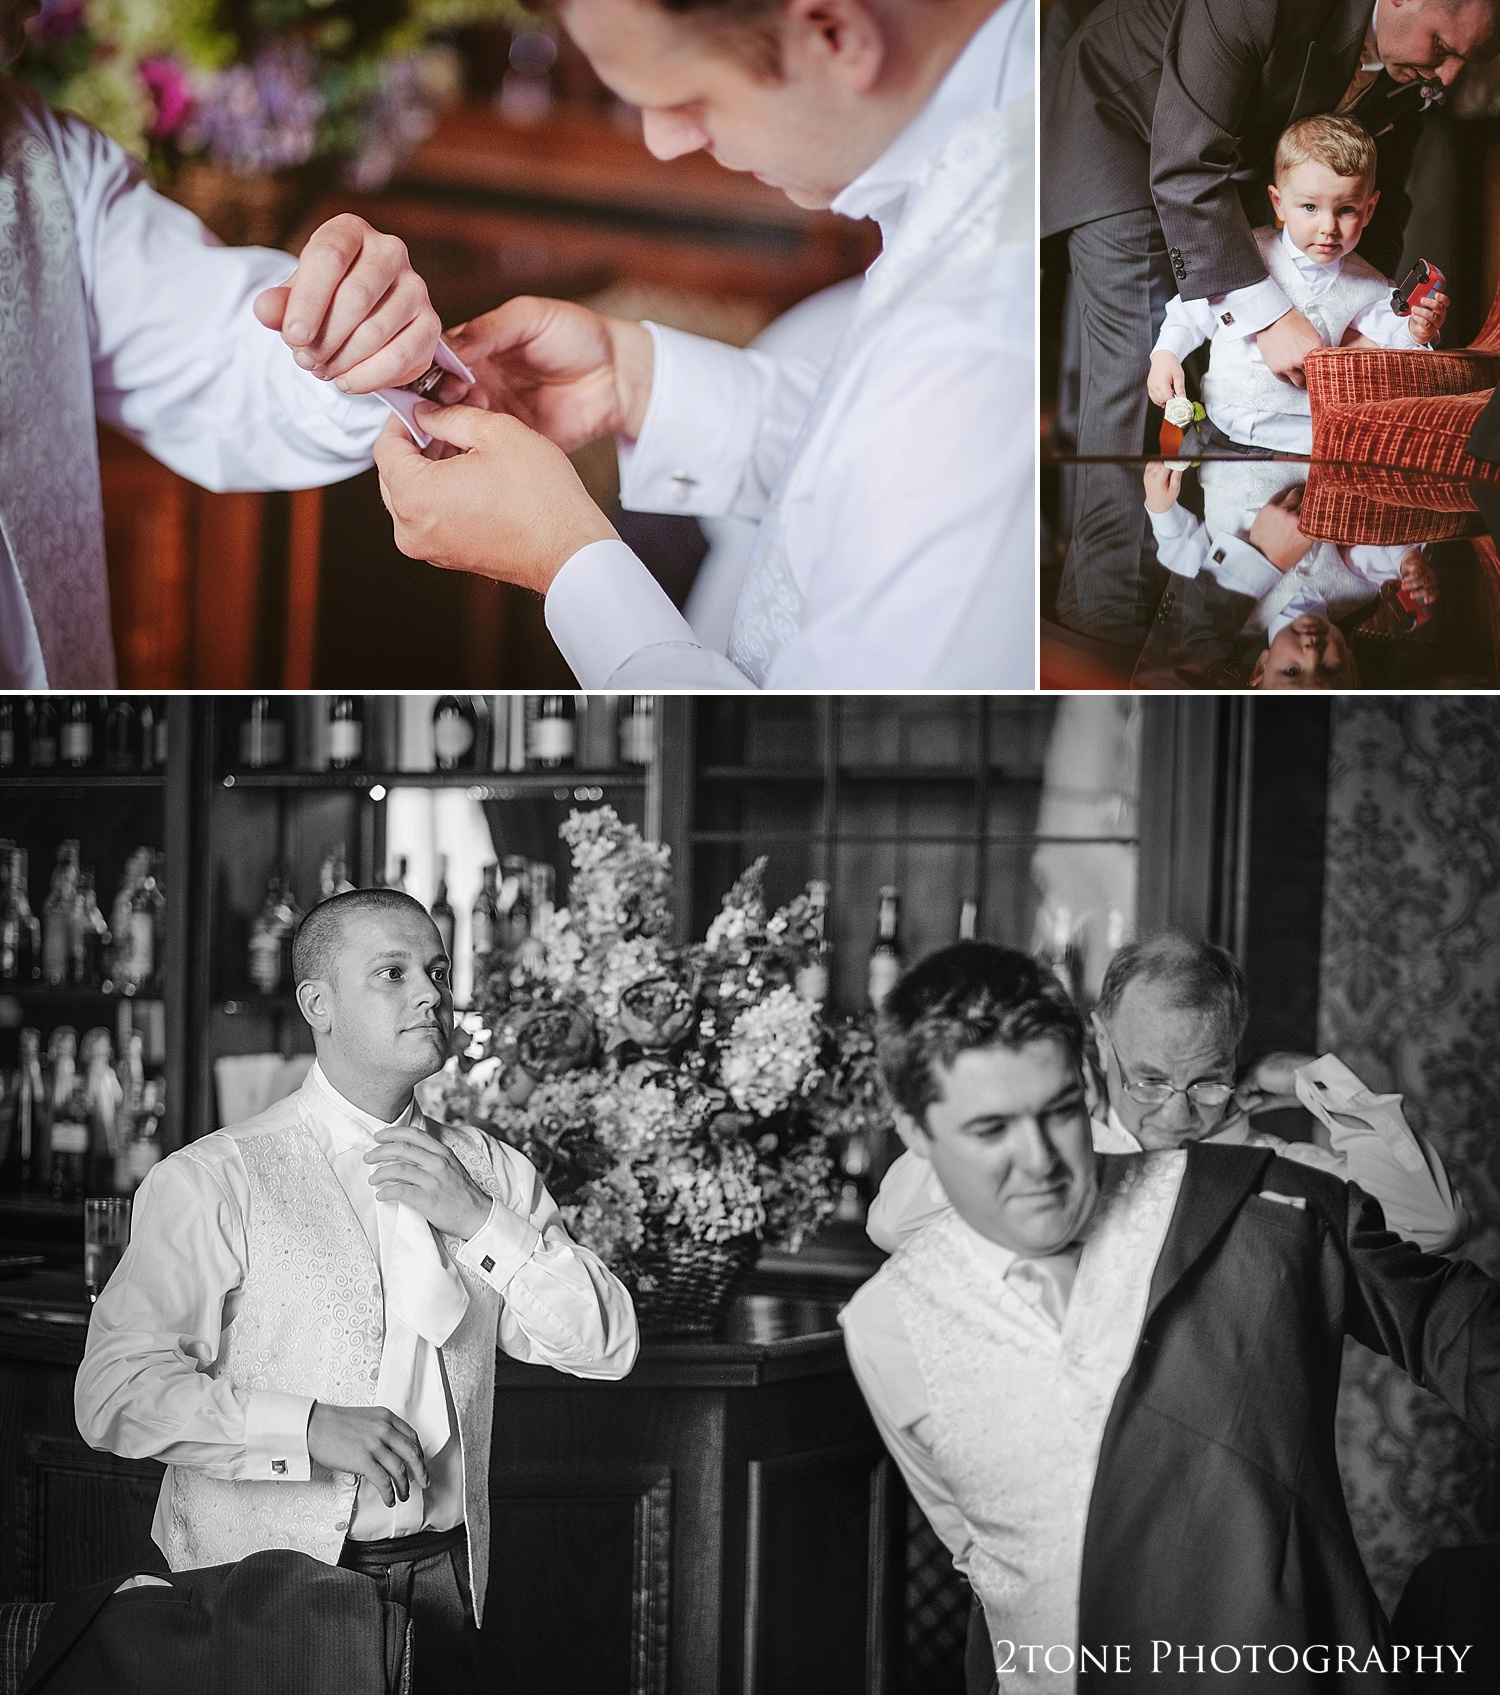 Groom getting ready.  Wedding Photography at Wynyard Hall by 2tone Photography www.2tonephotography.co.uk